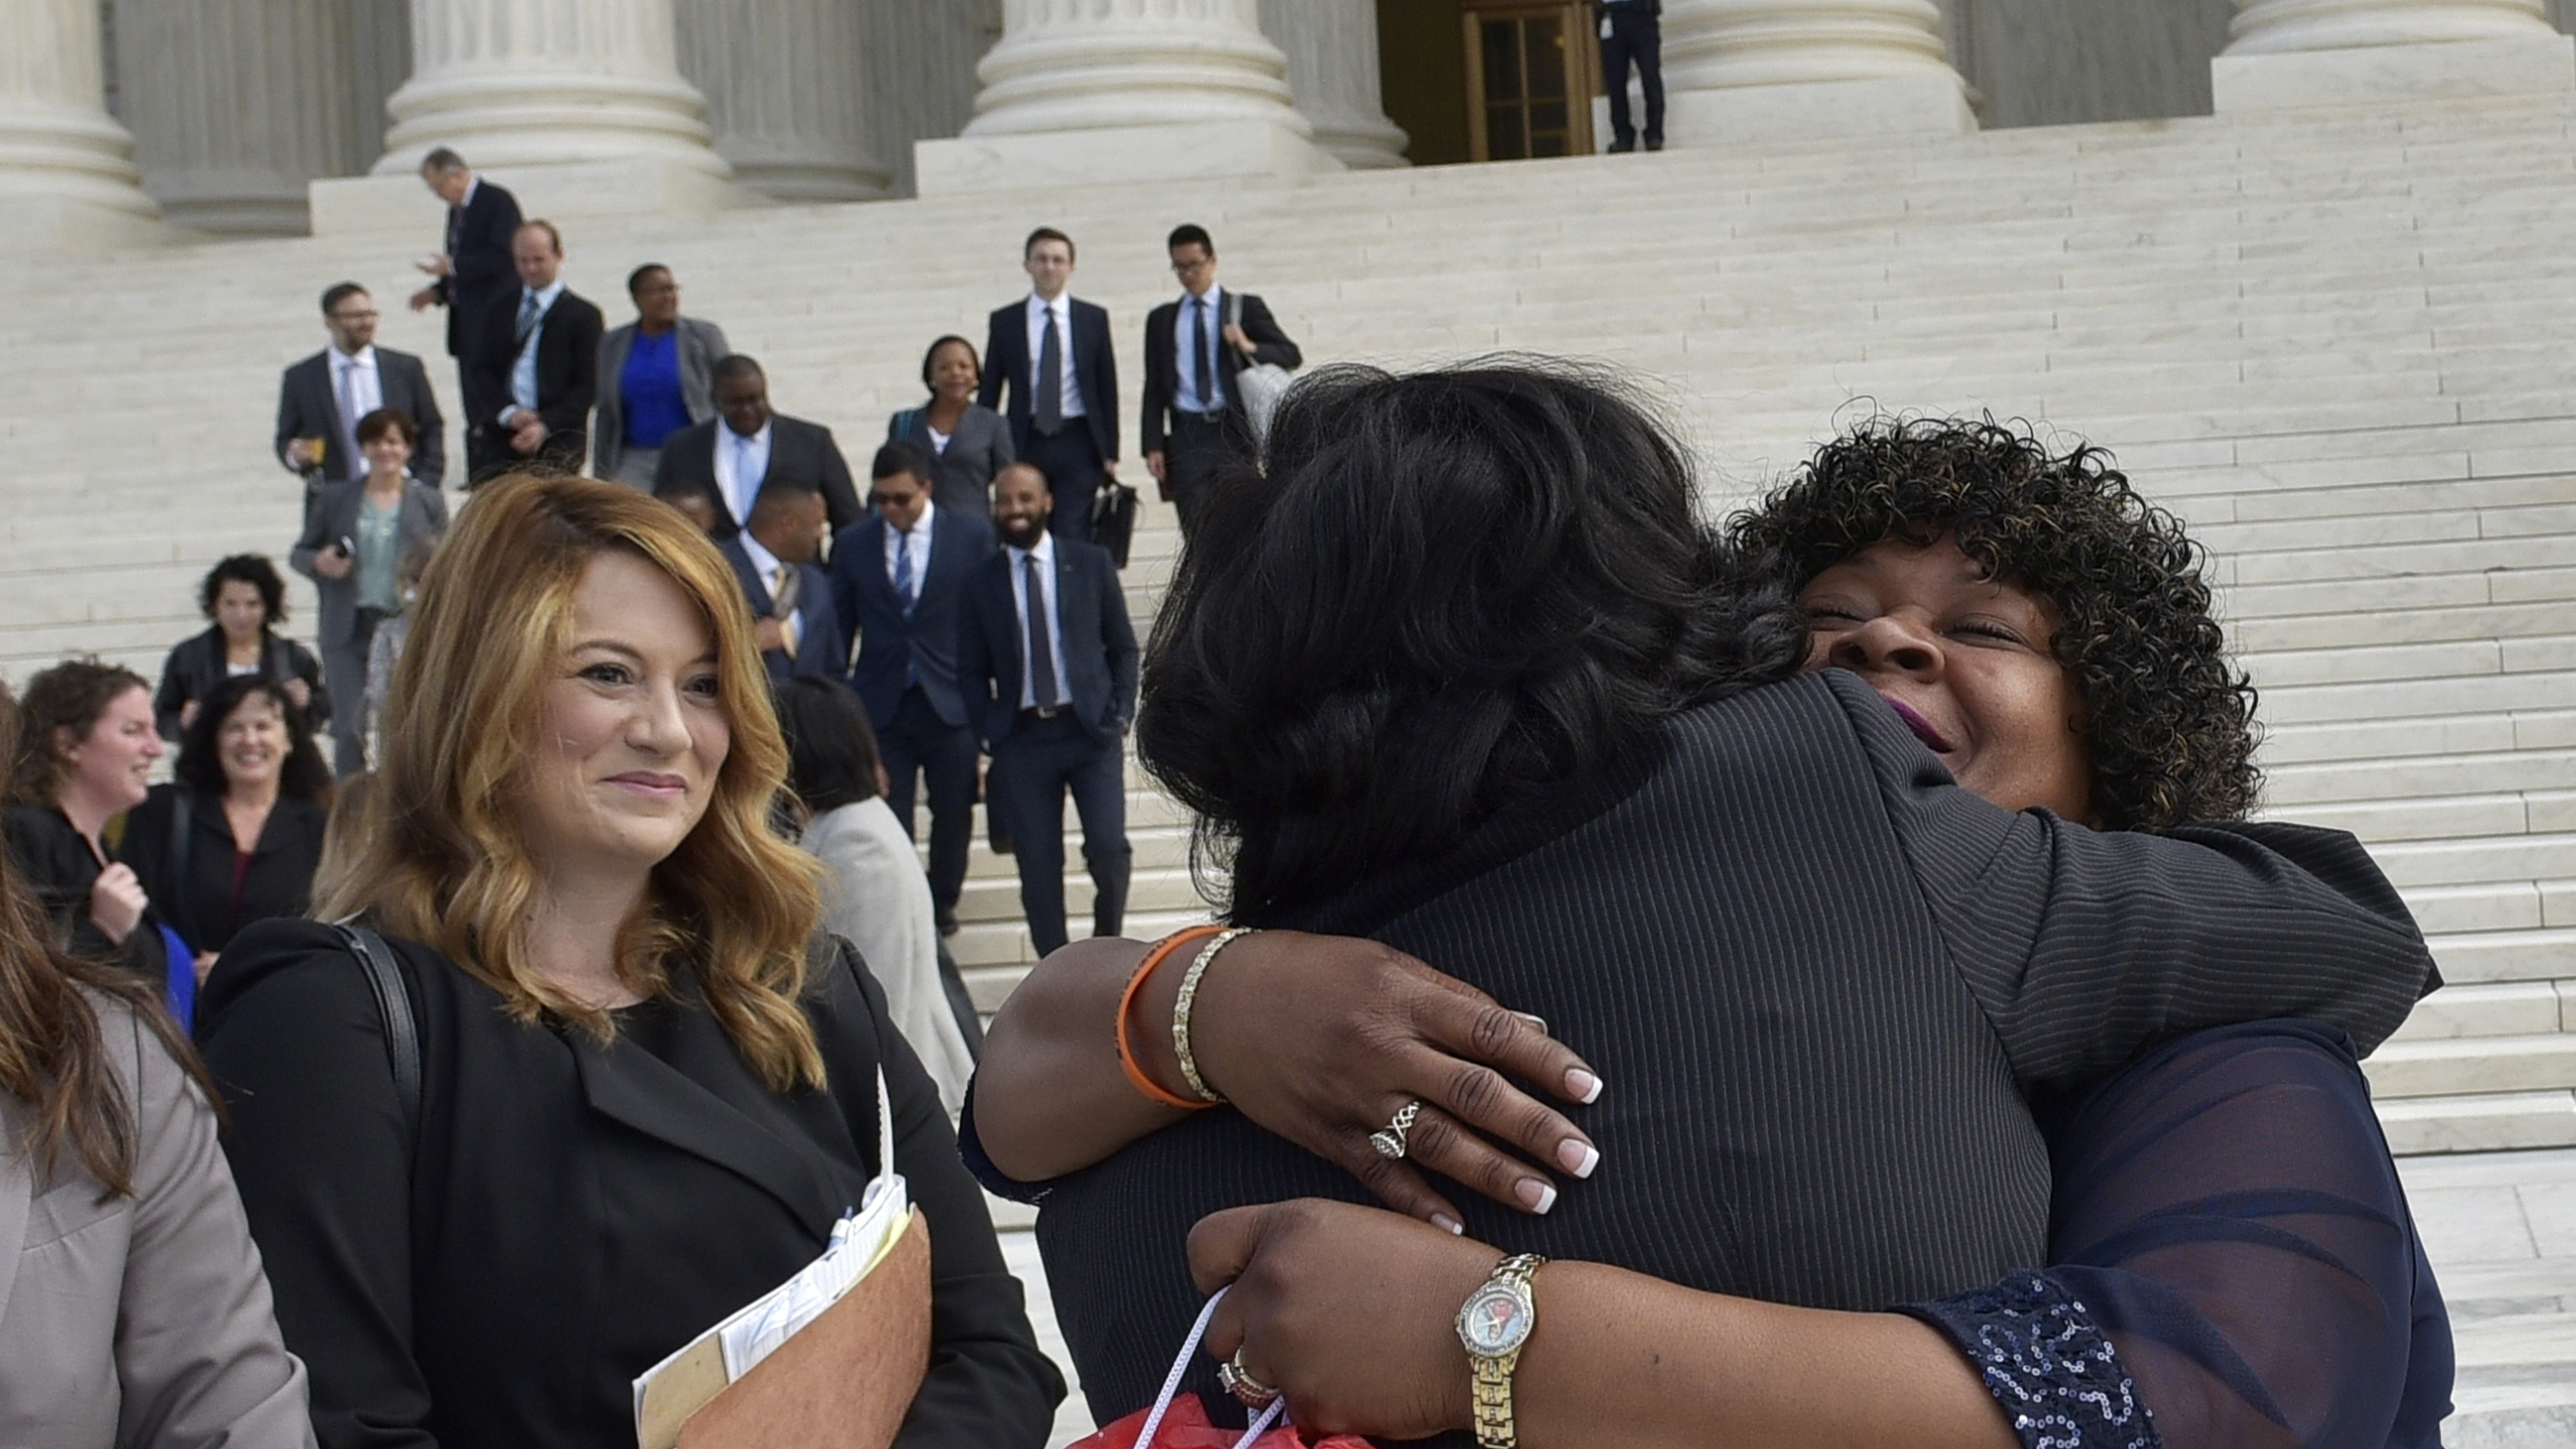 Christina Swarns, center, the lead counsel for Duane Buck, is embraced by Buck's stepsister Phyllis Taylor, right, outside of the U.S. Supreme Court on Oct. 5 in Washington, D.C. (Photo by Mandel Ngan/AFP/Getty Images)